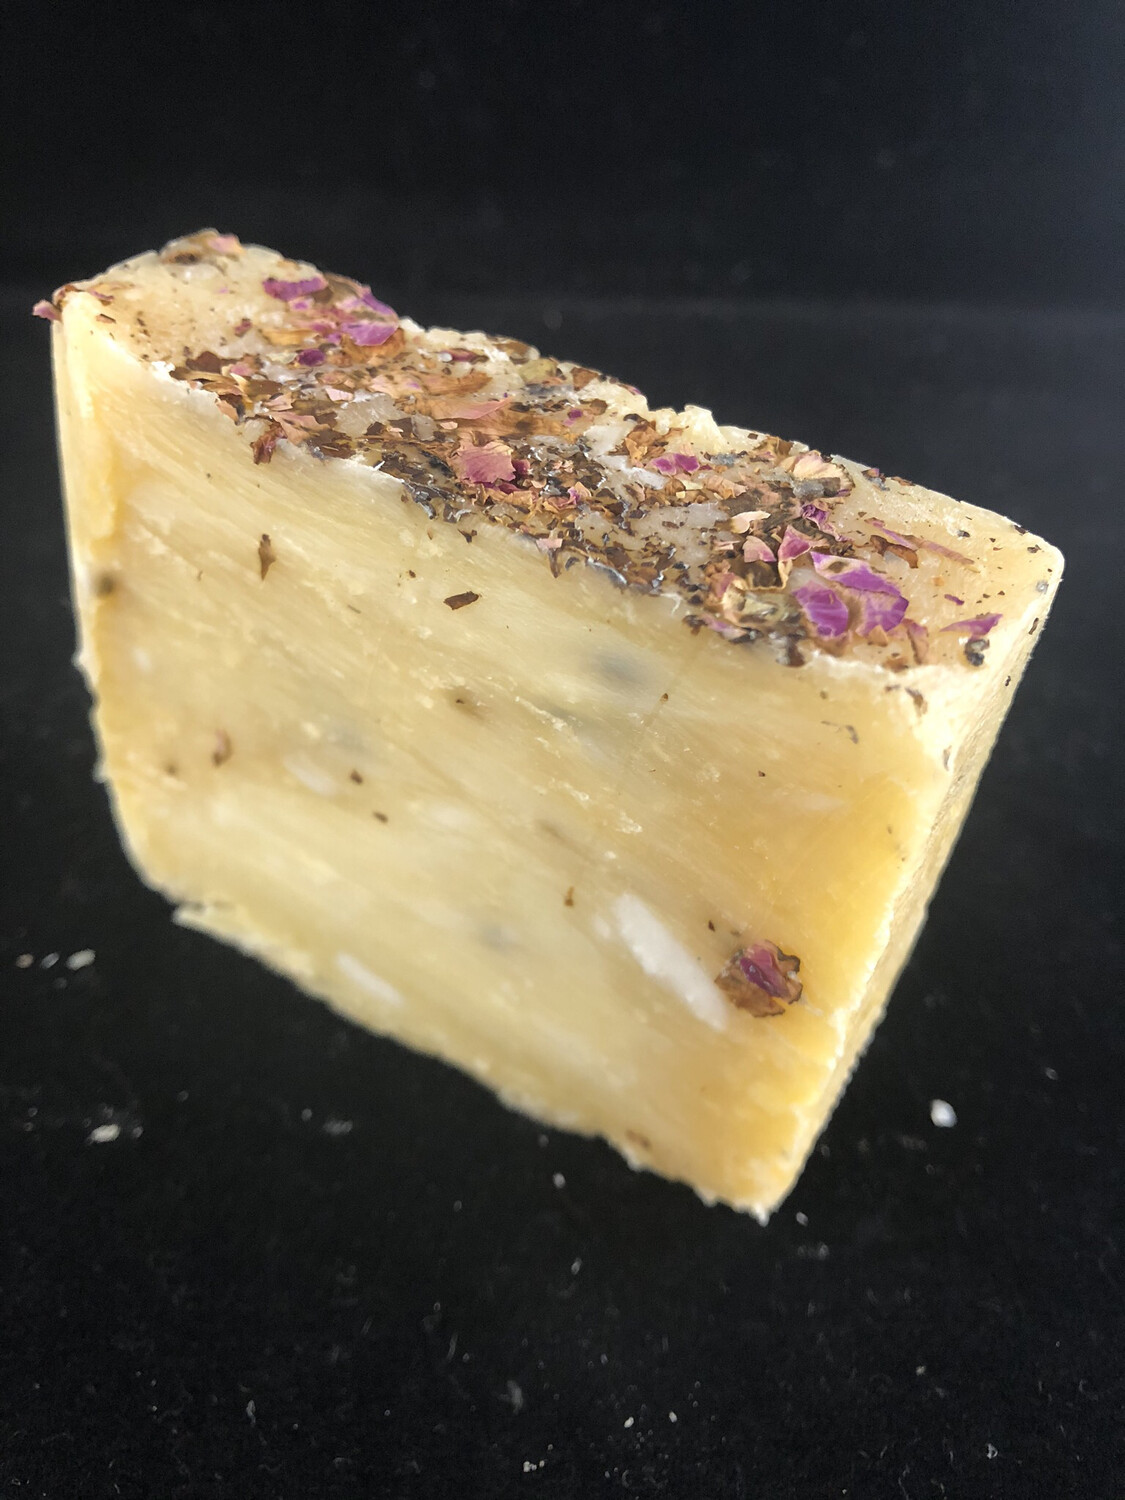 Natural Handmade Artisan Soap - Rosebud and Apple Blossom